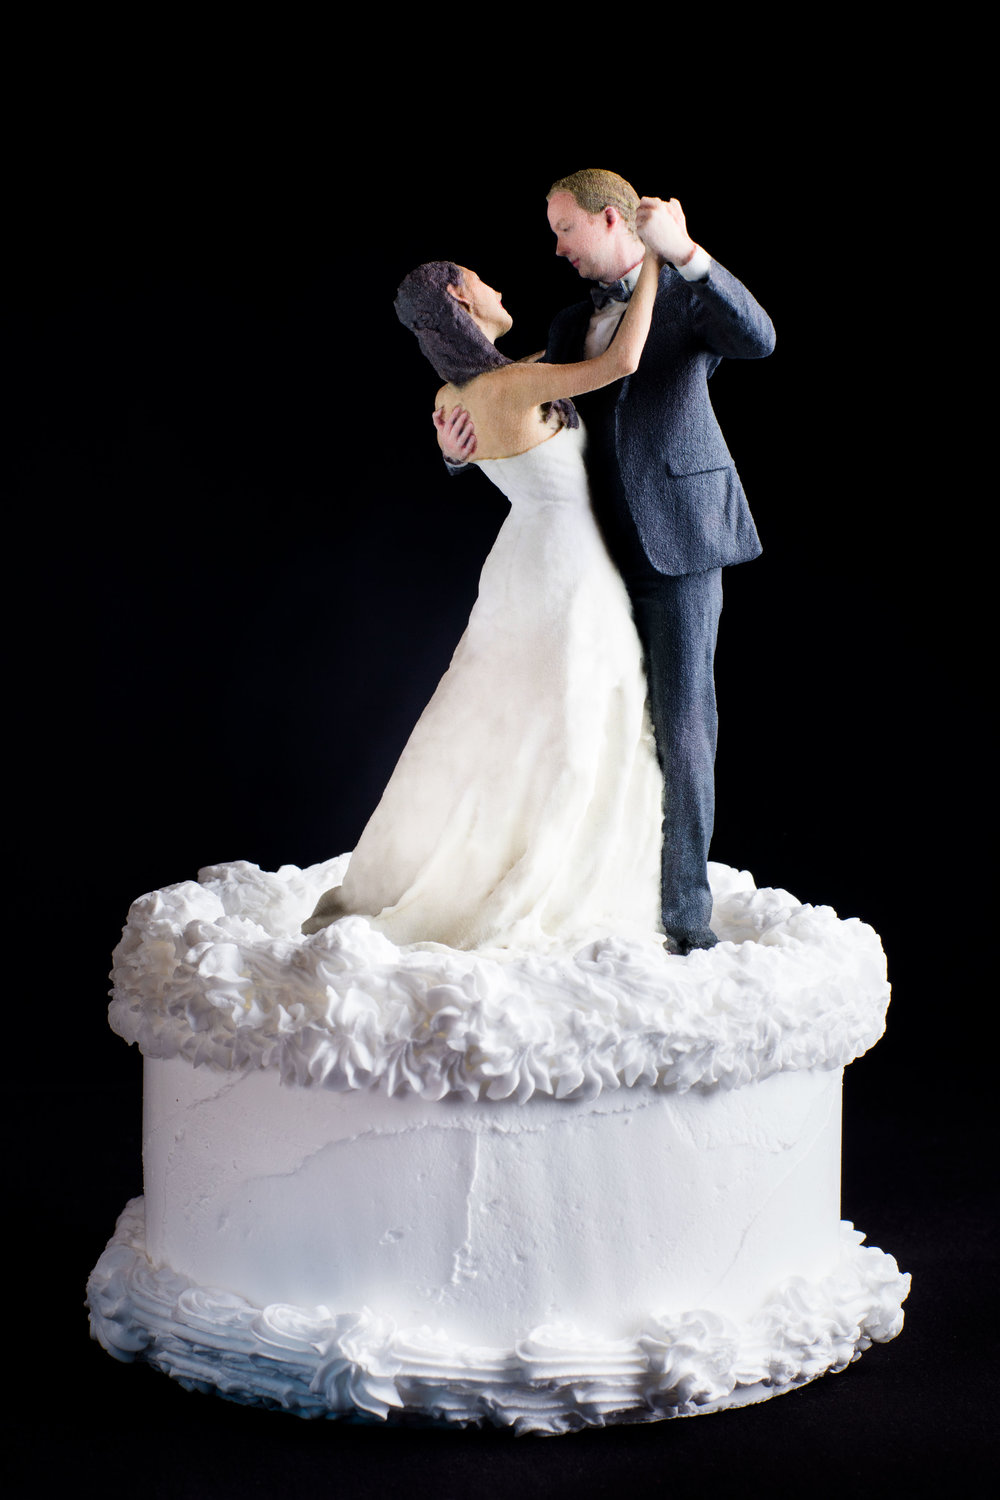 A Cake Topper as Unique as You are.